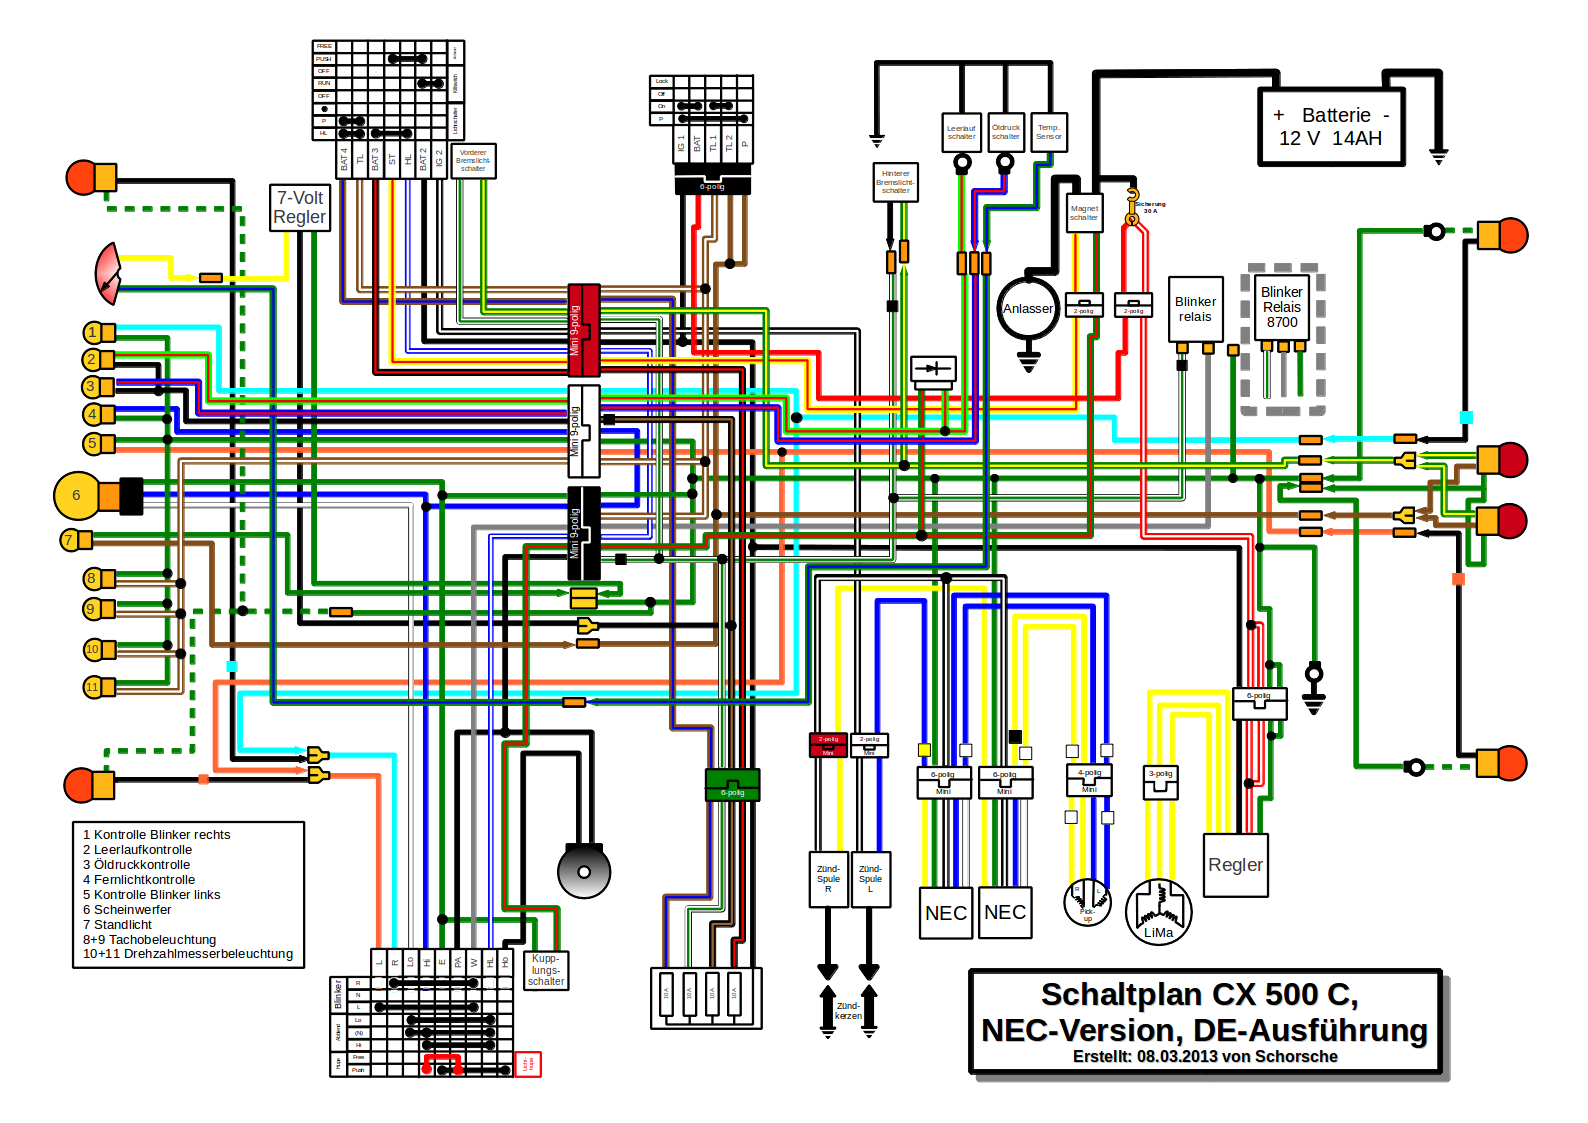 4415d1378658606 new wiring harness still shorting cx 500 c de nec gl1000 wiring diagram na50 wiring diagram \u2022 wiring diagrams j 03 gsxr 1000 wiring diagram at soozxer.org